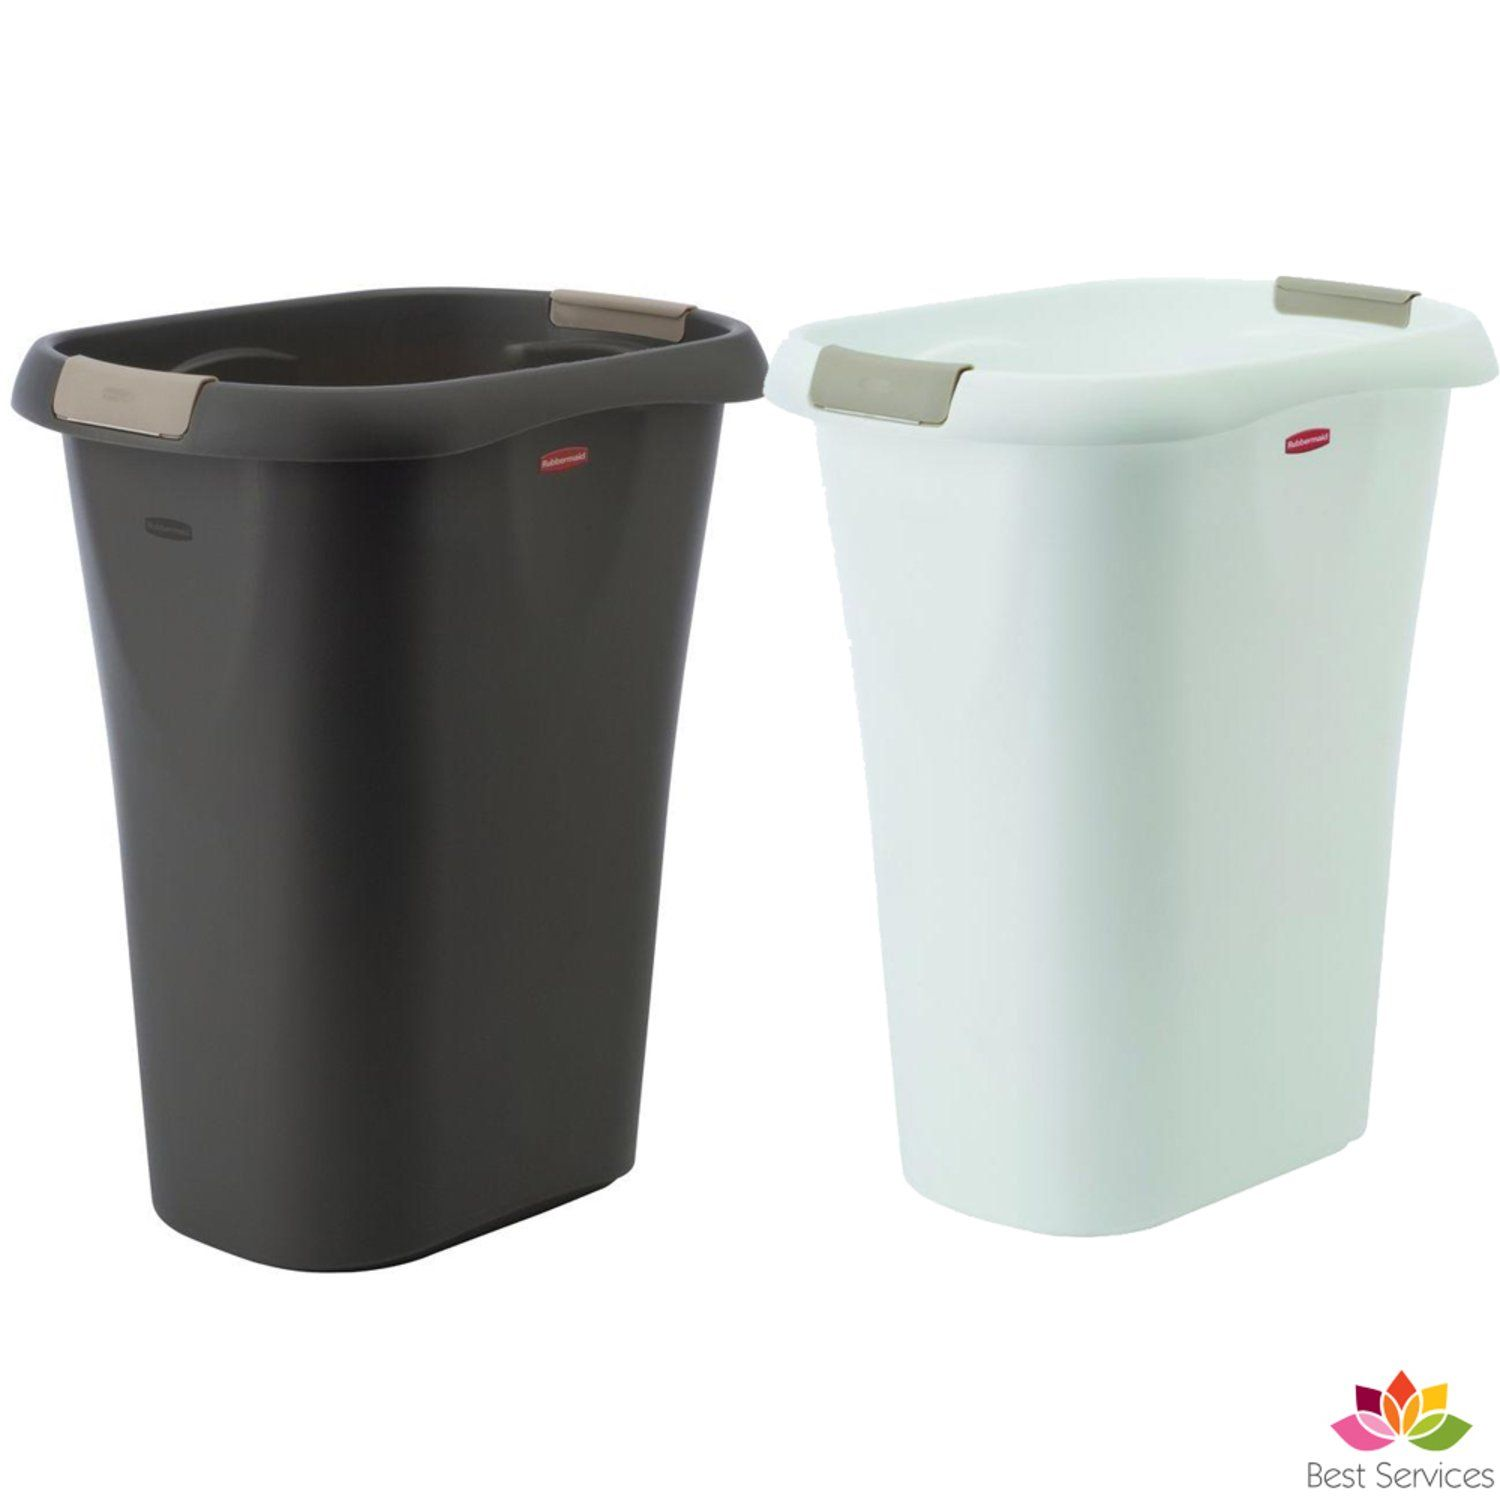 Details About Step On Plastic Trash Can 13 Gal Rubbermaid Kitchen